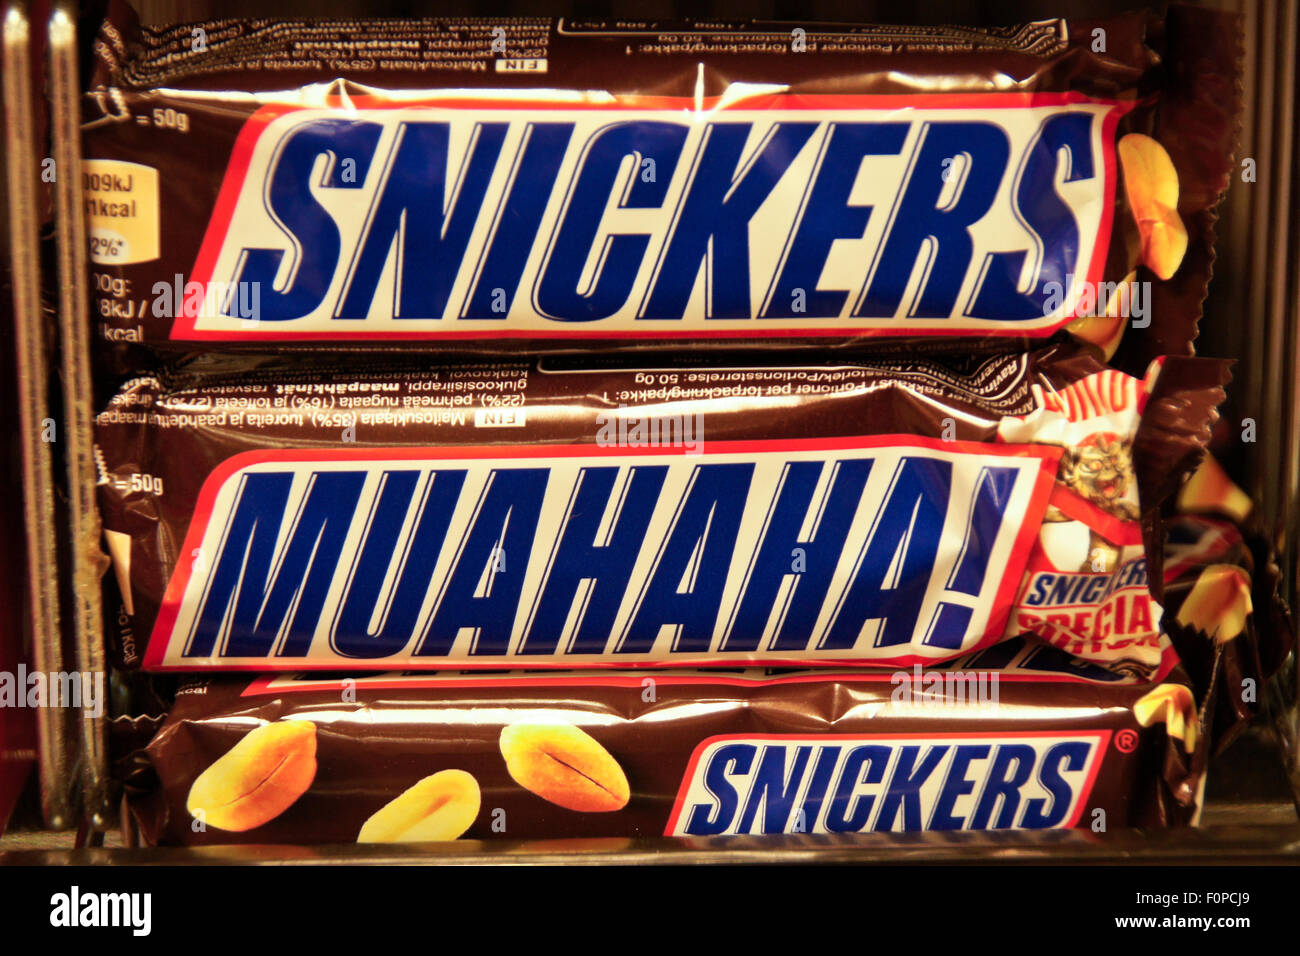 Snickers candy bars and Special Edition Muahaha! - Stock Image